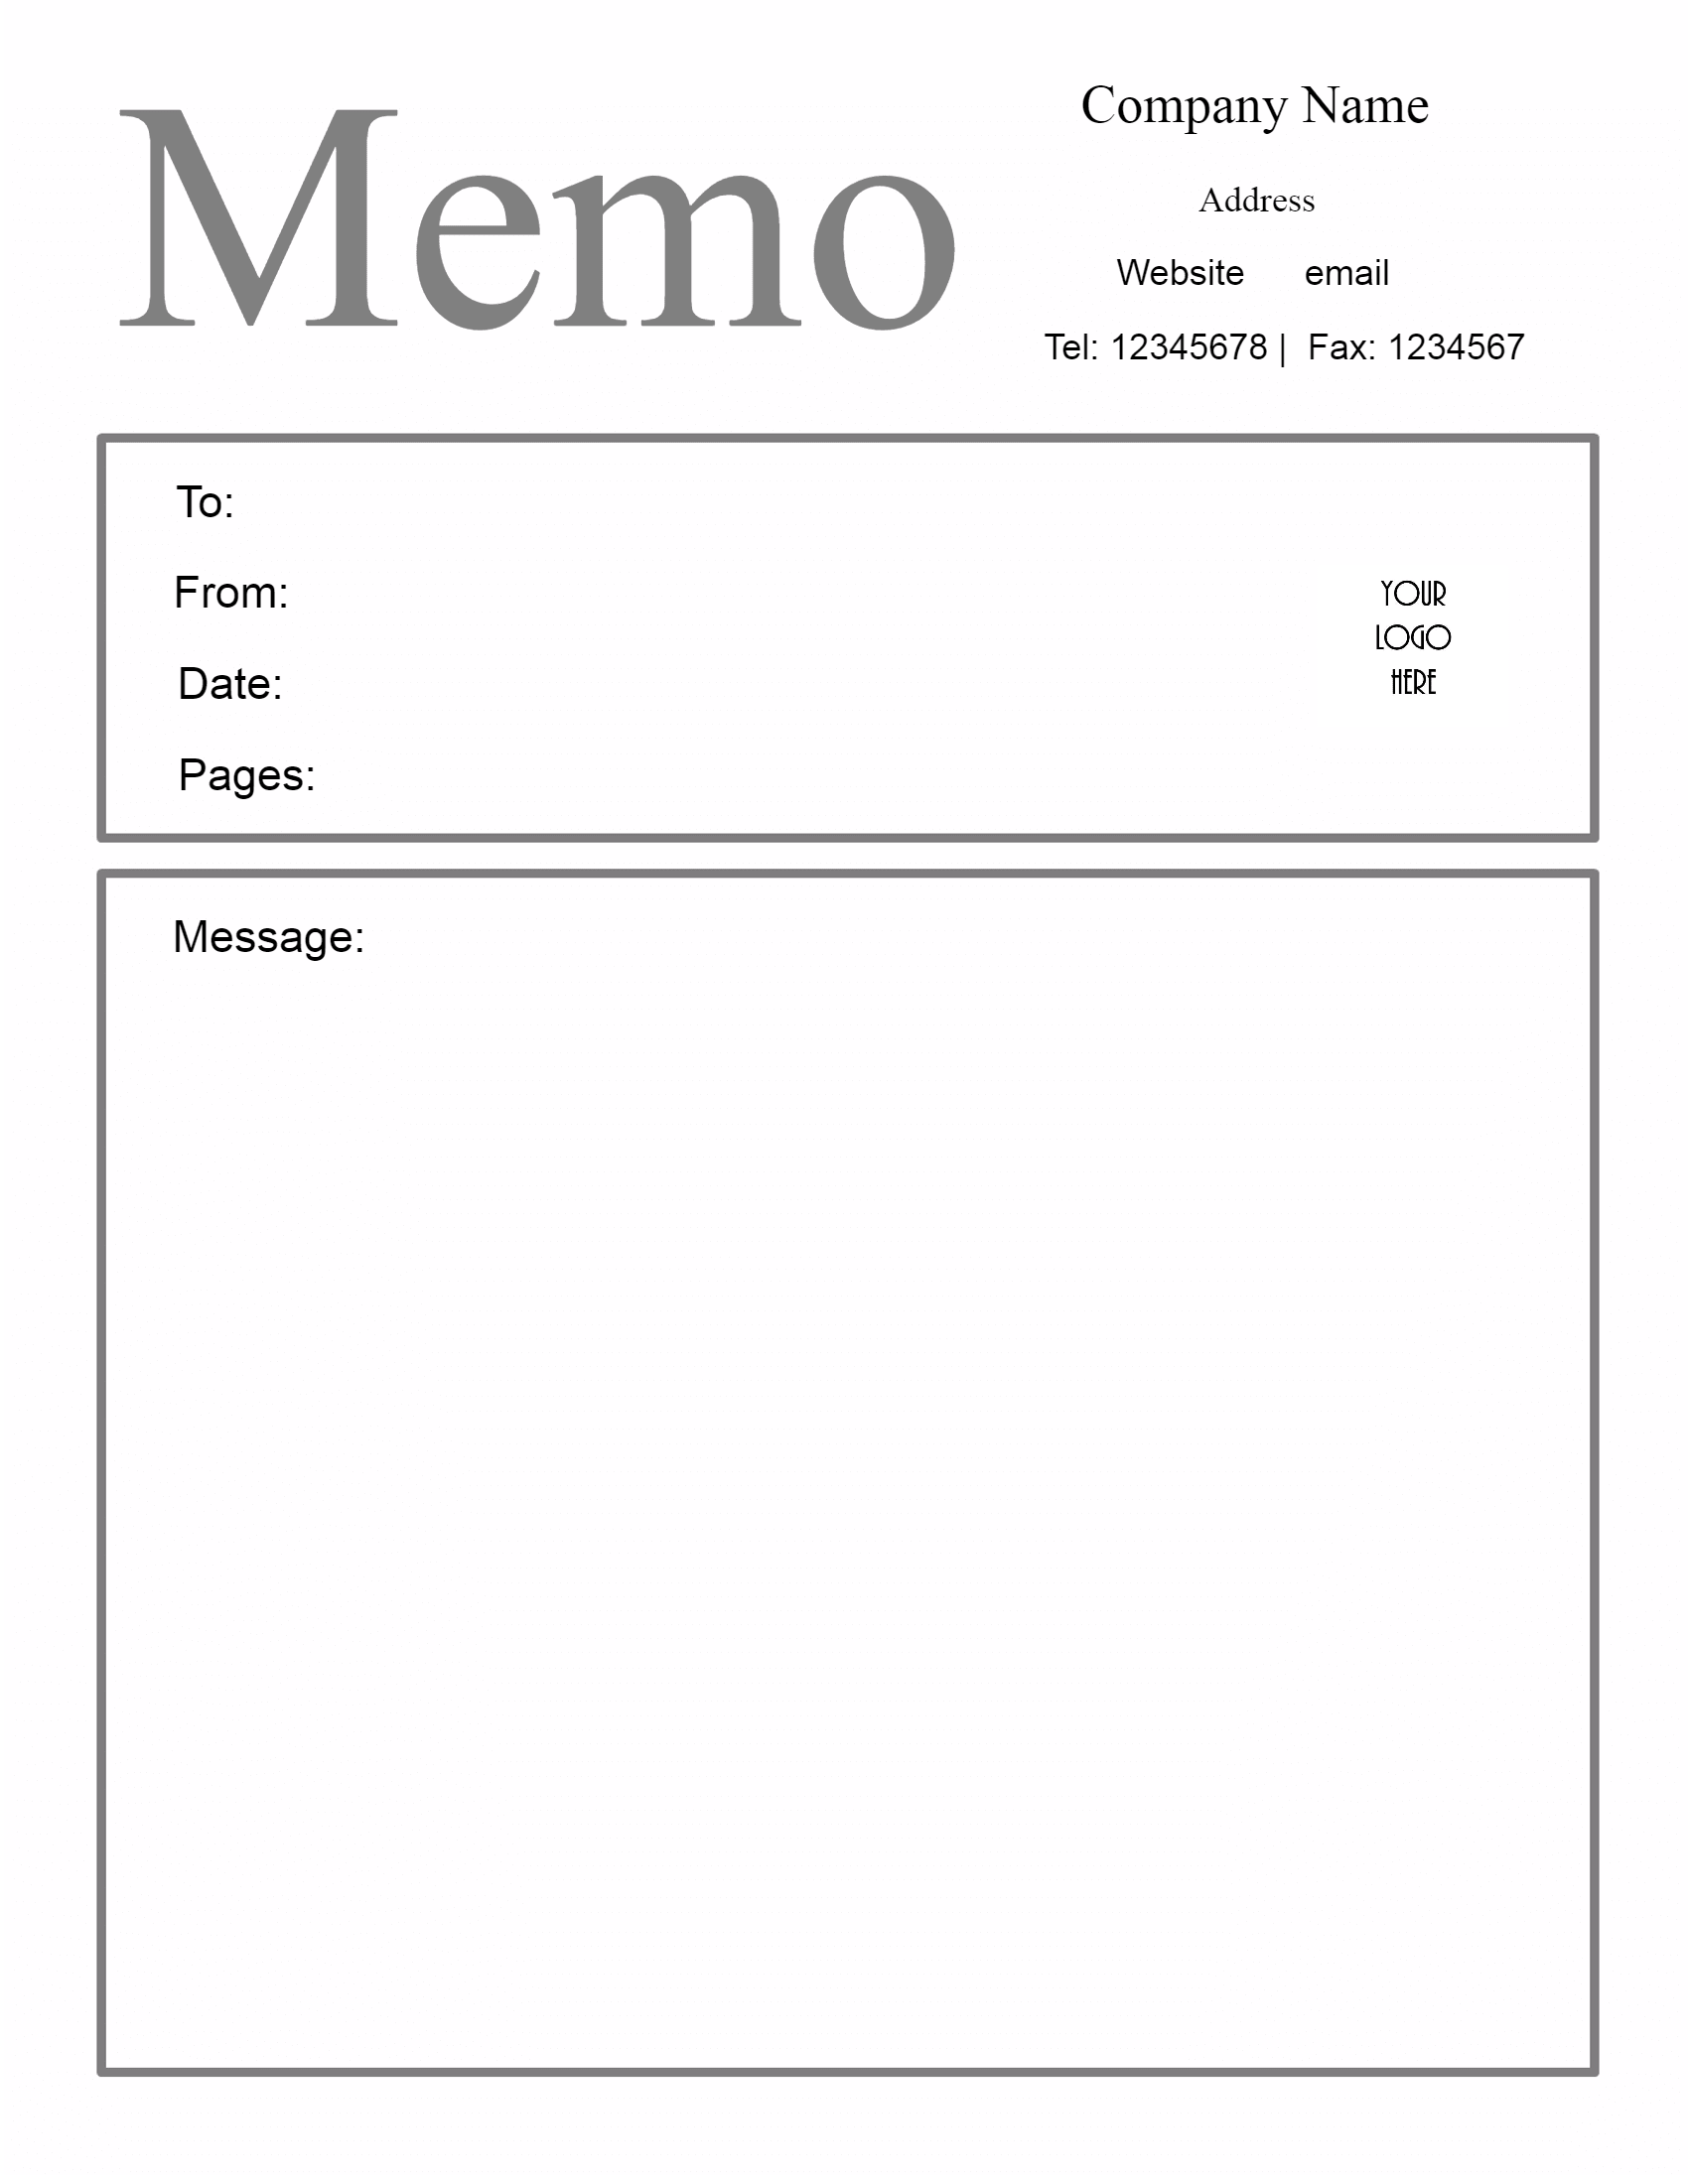 Memo Template Throughout Memo Template Word